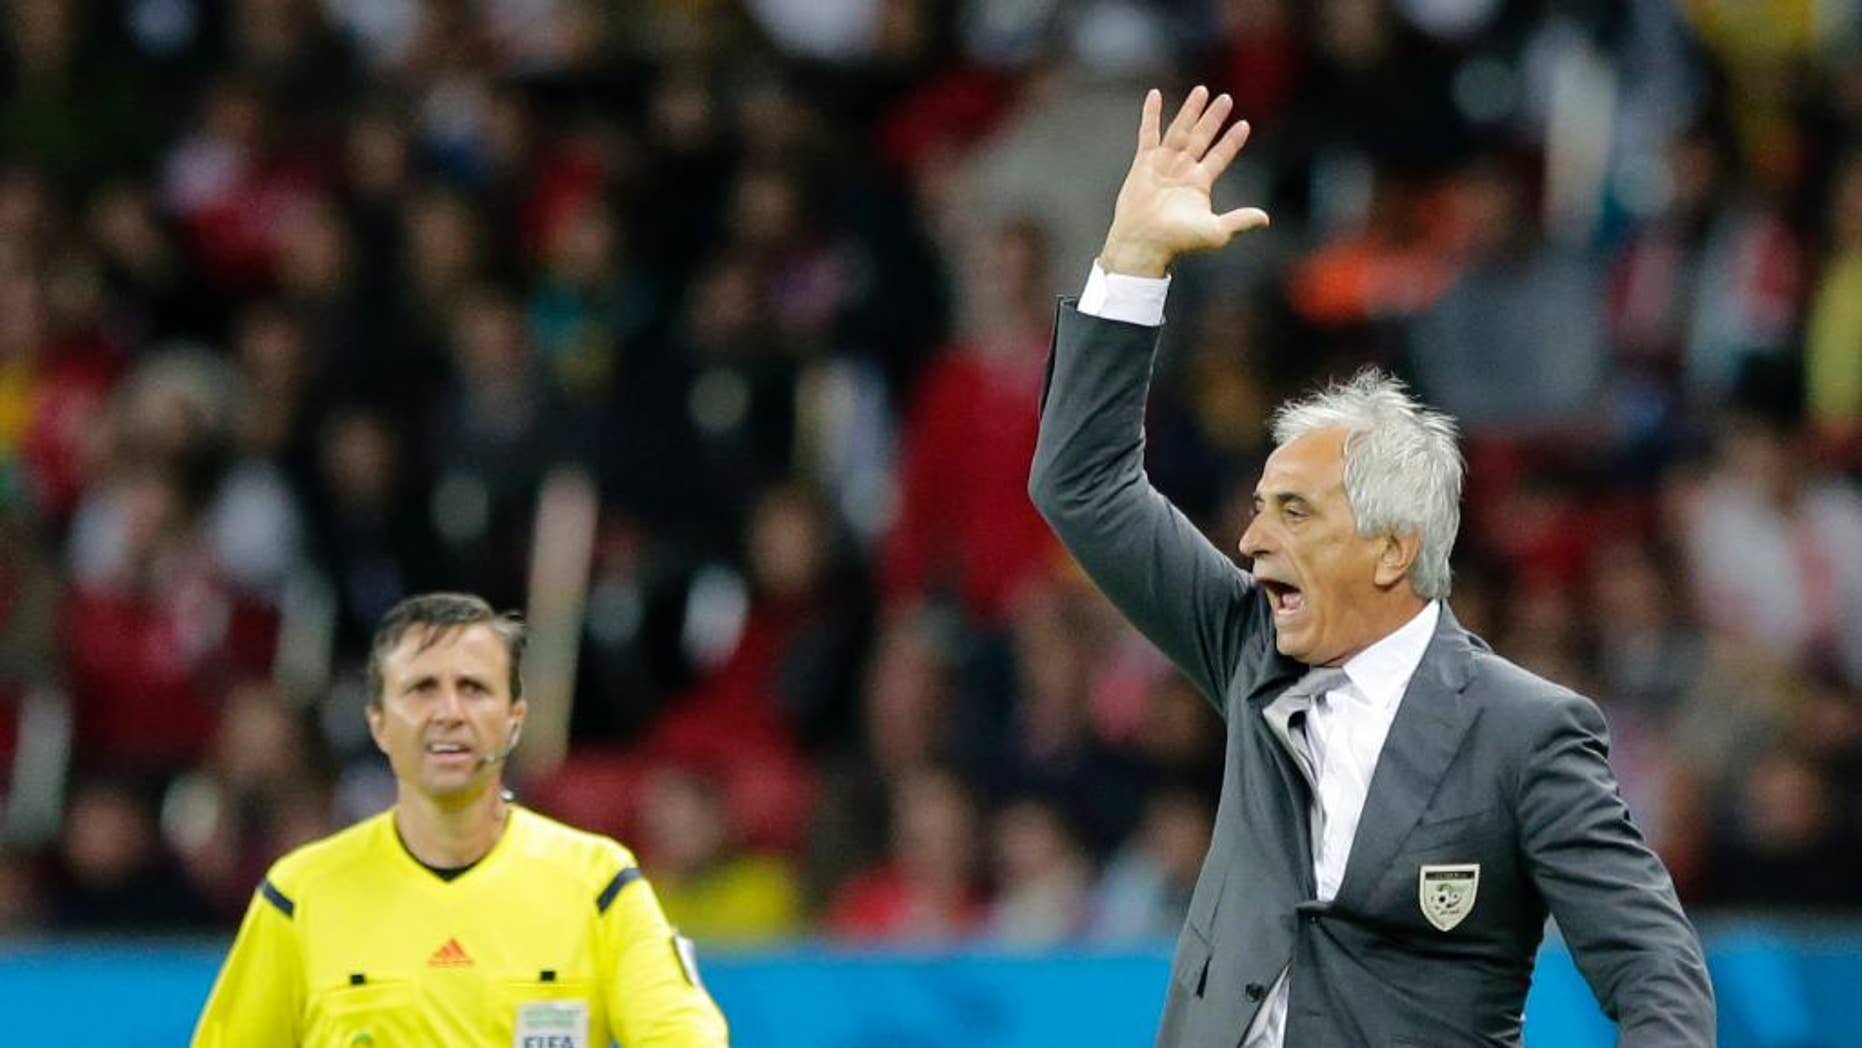 Algeria's head coach Vahid Halilhodzic yells from the sidelines during the World Cup round of 16 soccer match between Germany and Algeria at the Estadio Beira-Rio in Porto Alegre, Brazil, Monday, June 30, 2014. (AP Photo/Matthias Schrader)